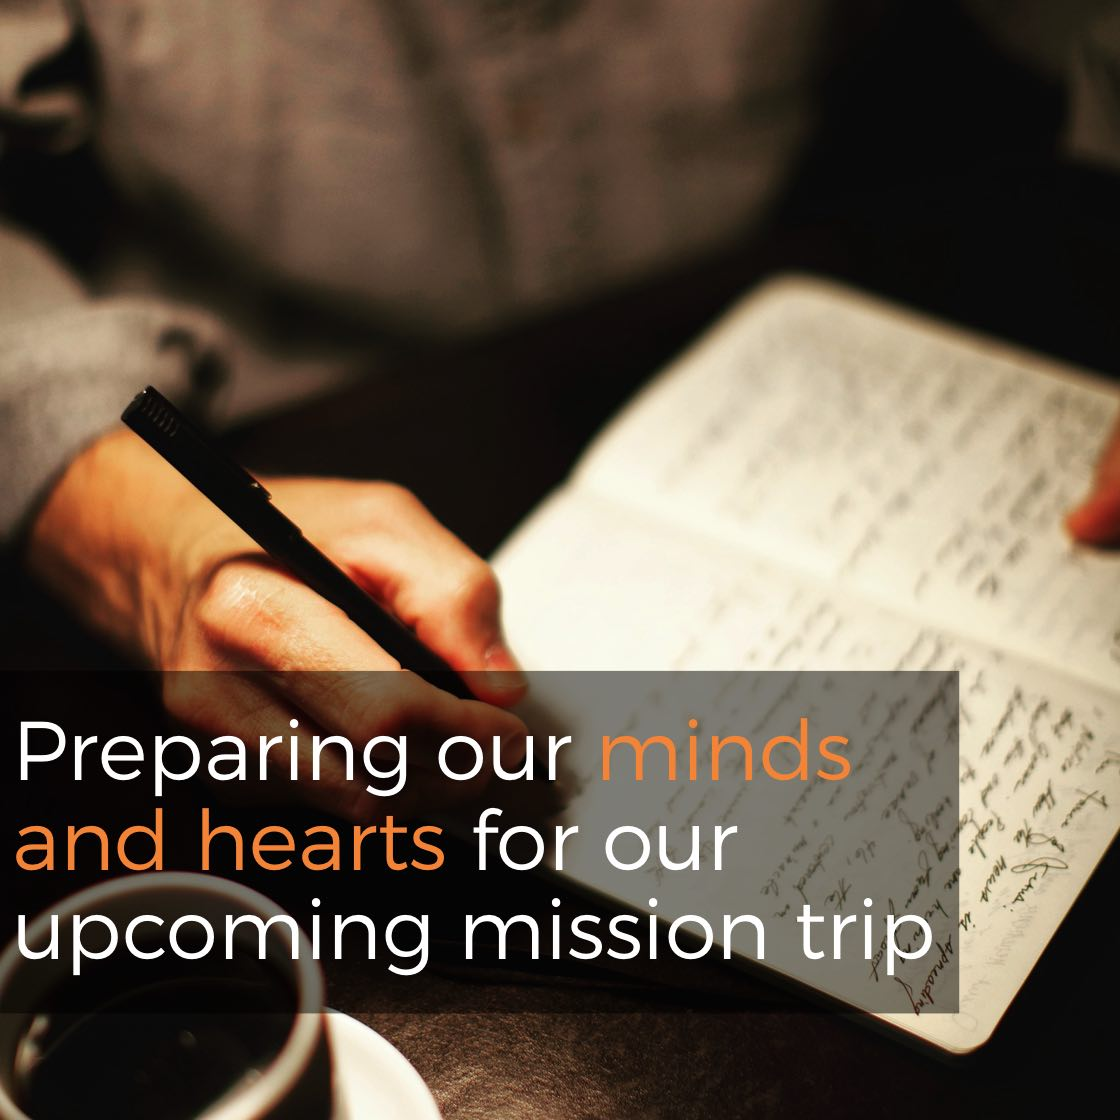 Episode 30: Preparing our minds and hearts for our upcoming mission trip